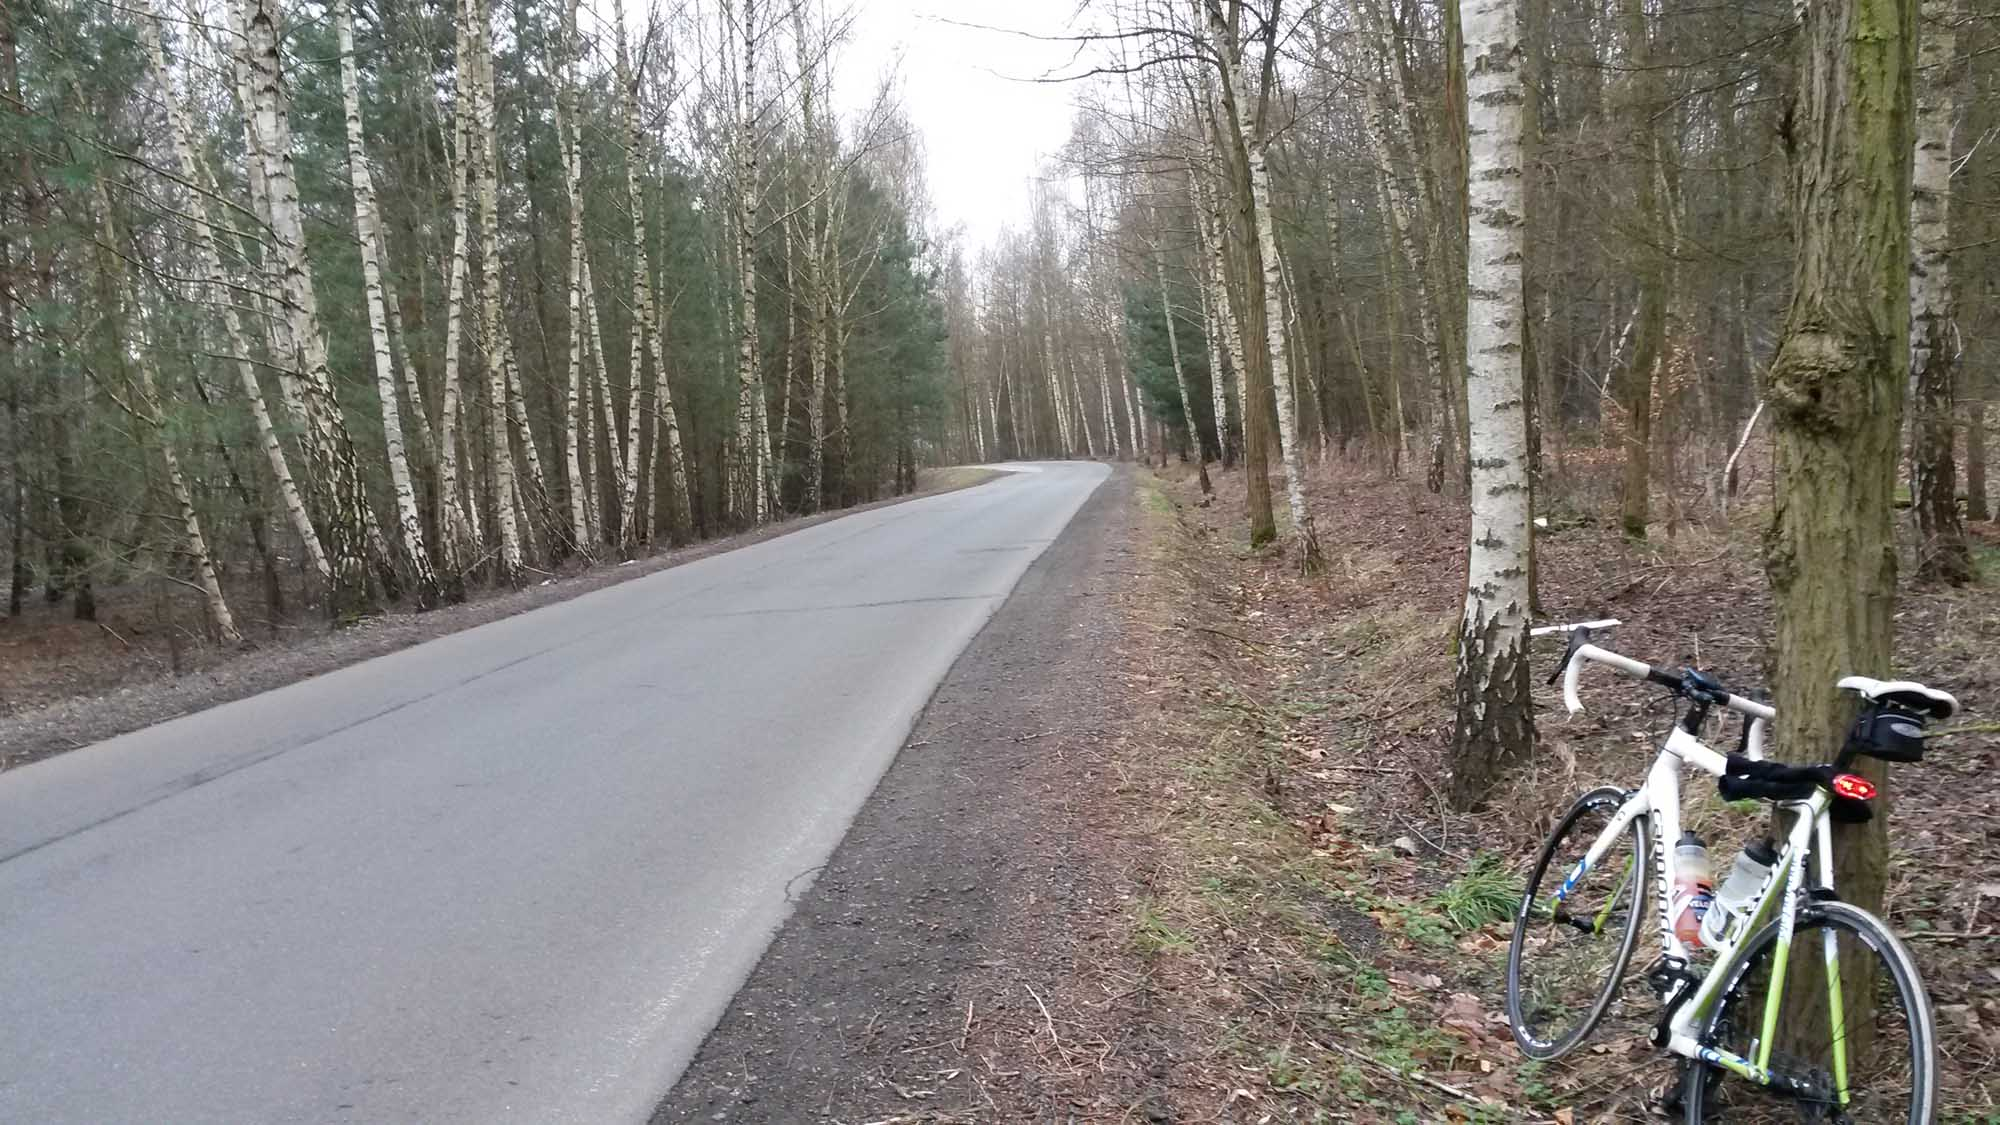 Here starts a wonderfully empty yet paved road that took me along the Havel through the little village Sacrow and back to the busy B2. I was afraid it would turn into cobblestones all of a sudden, but it never did. Will ride here again!